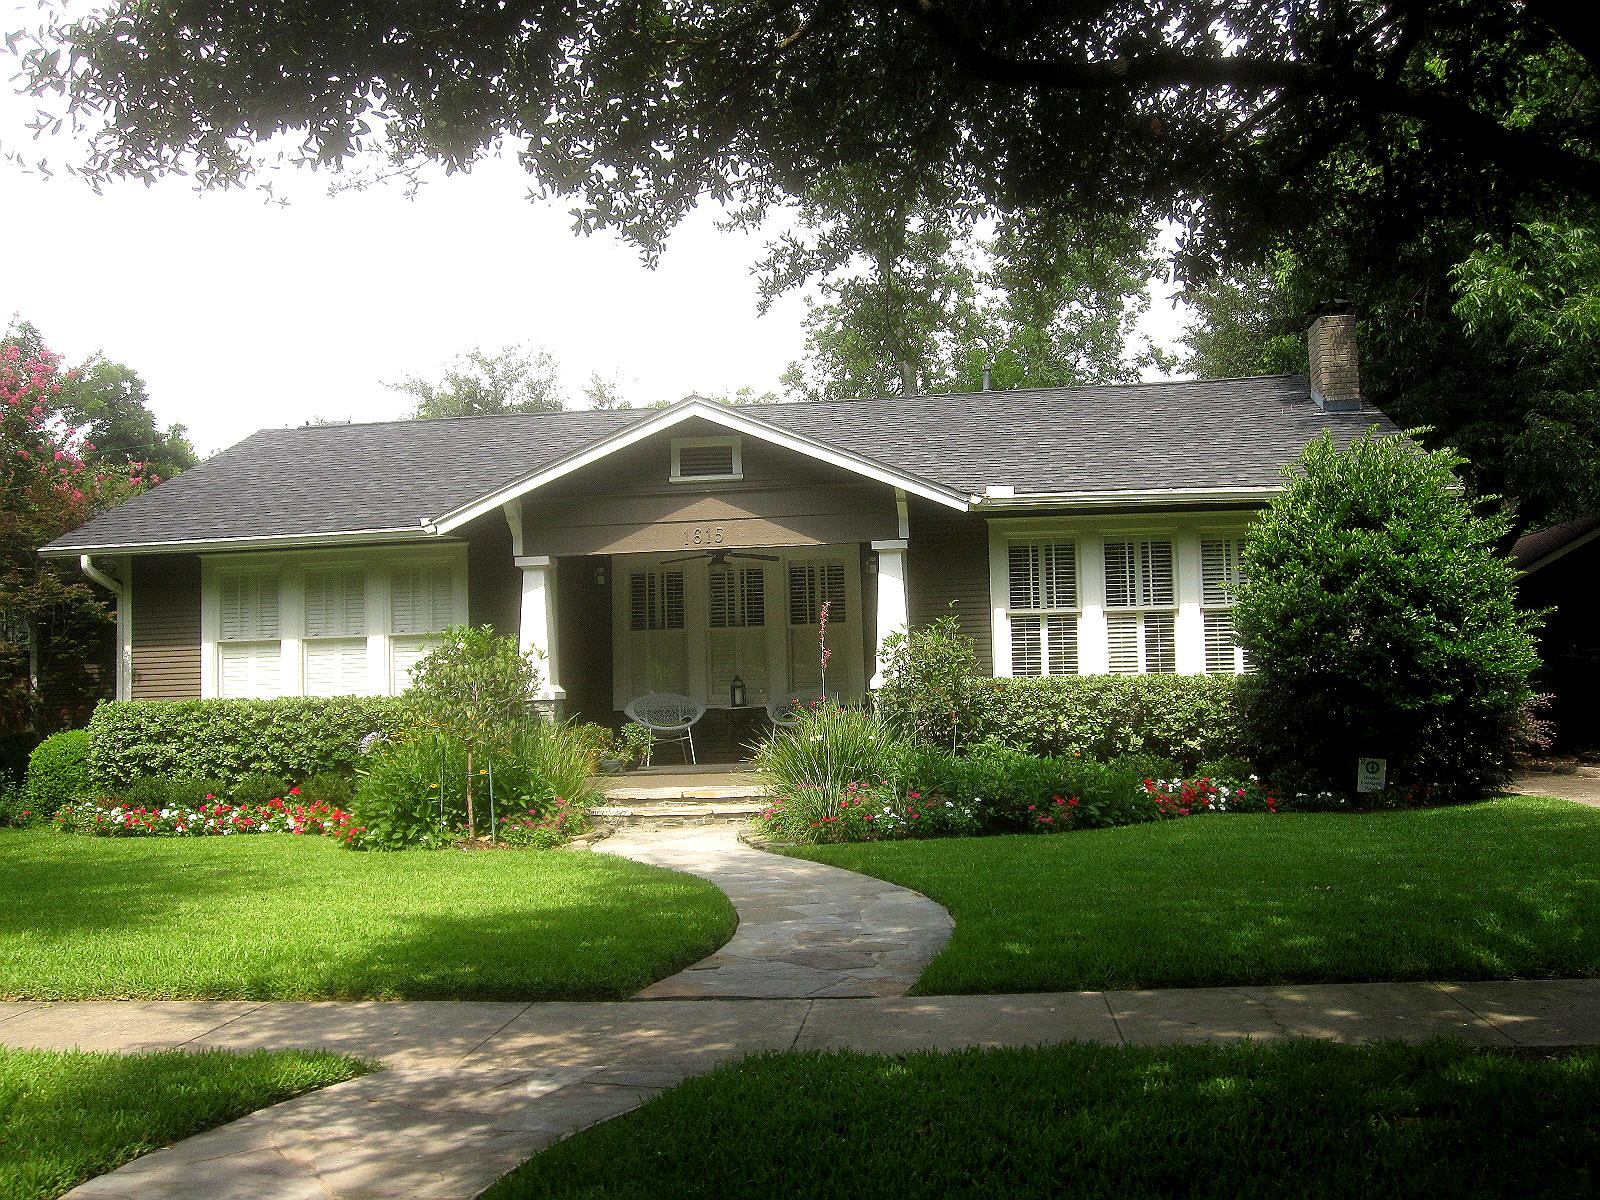 The other houston bungalow front yard garden ideas for Front lawn design